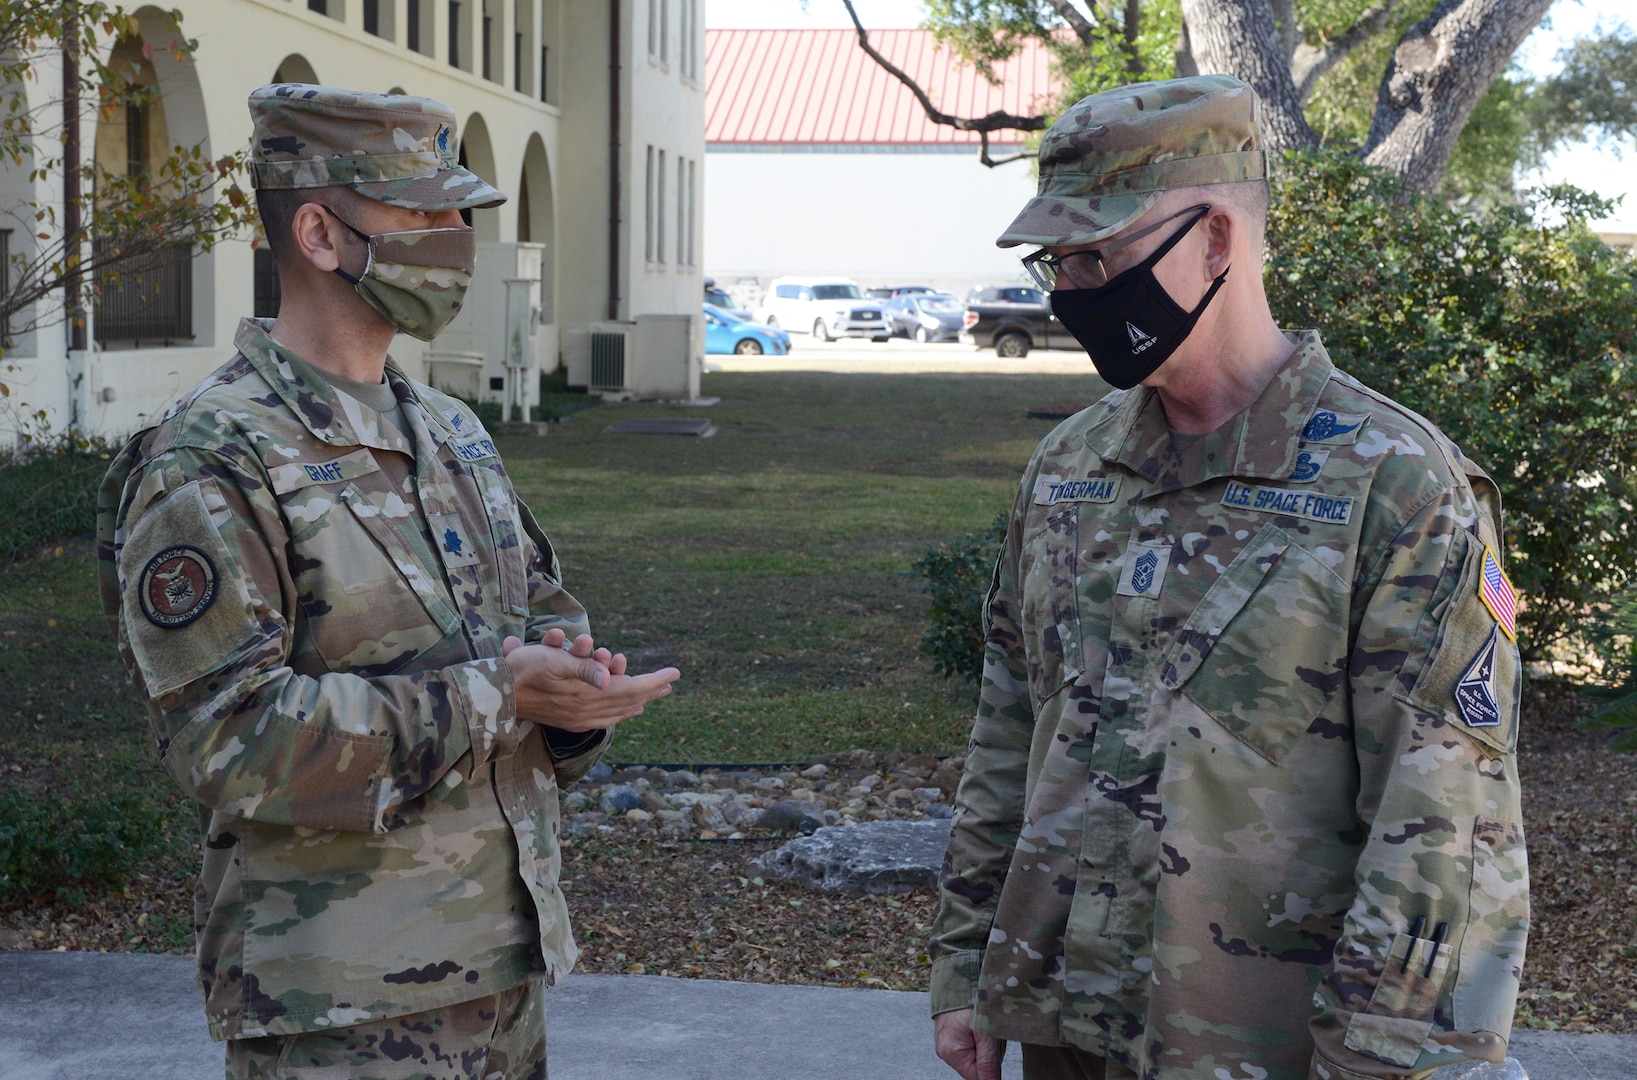 Chief Master Sergeant Roger A. Towberman (right), the senior enlisted advisor of the United States Space Force, is greeted by Lt. Col. Michael Graff, Air Force Recruiting Service, Space Force Recruiting branch chief, during a visit to AFRS in October 2020.